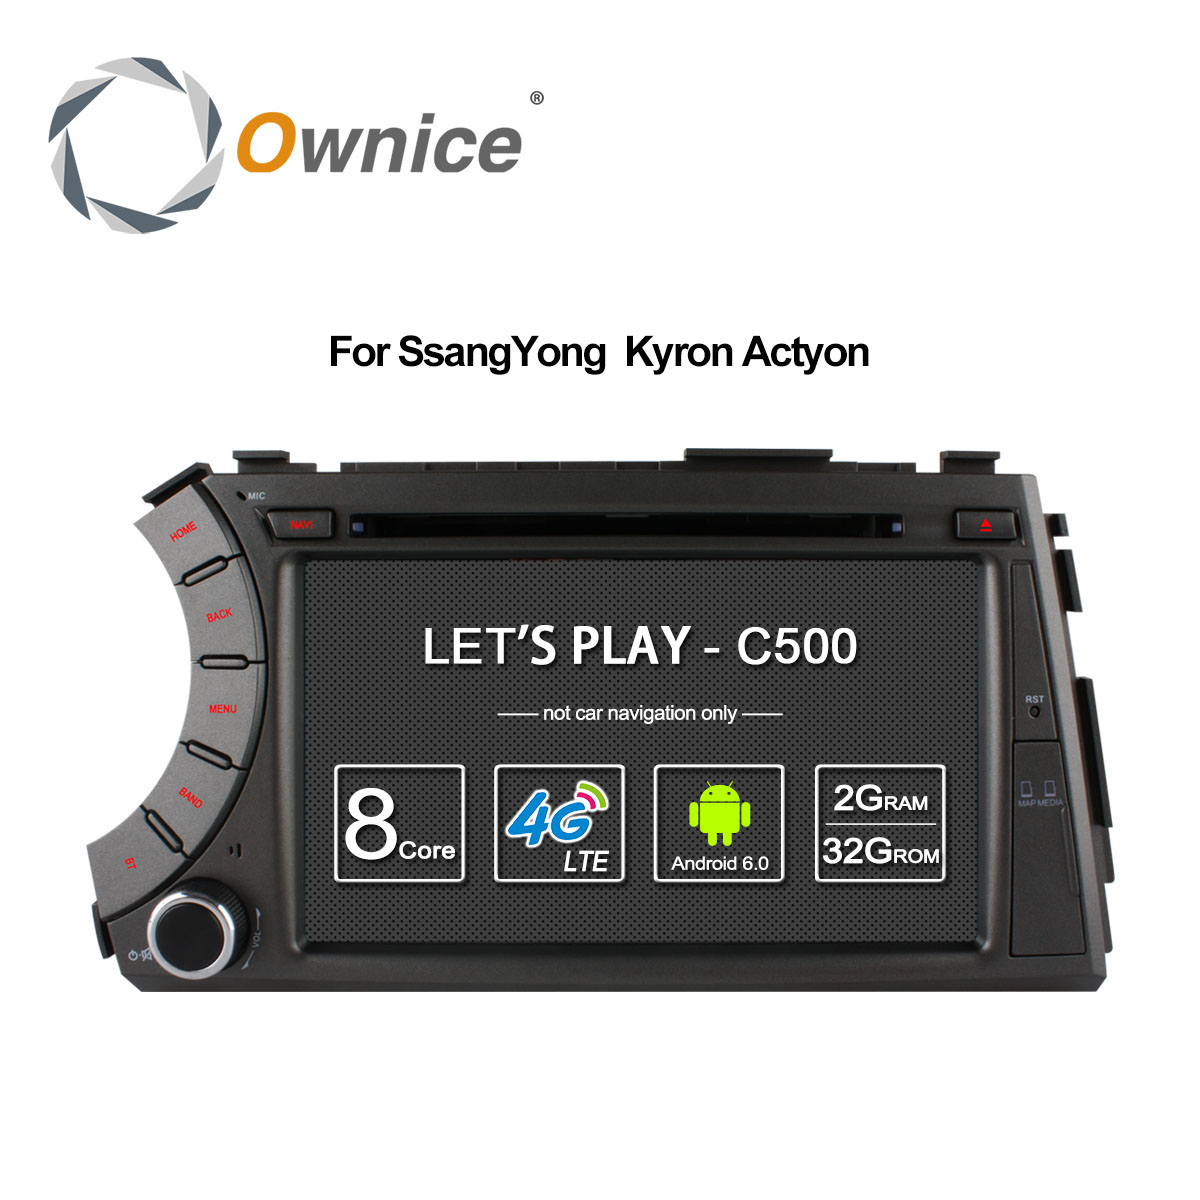 Ownice C500 4G SIM LTE Android 6.0 Octa 8 Core car dvd gps player for ssangyong Kyron Actyon 4G Wifi BT radio 2GB RAM 32GB ROM ownice c500 g10 octa core 2gb ram 32g rom android car dvd 8 1 gps for mazda 6 summit 2009 2015 wifi 4g lte radio dab dvr